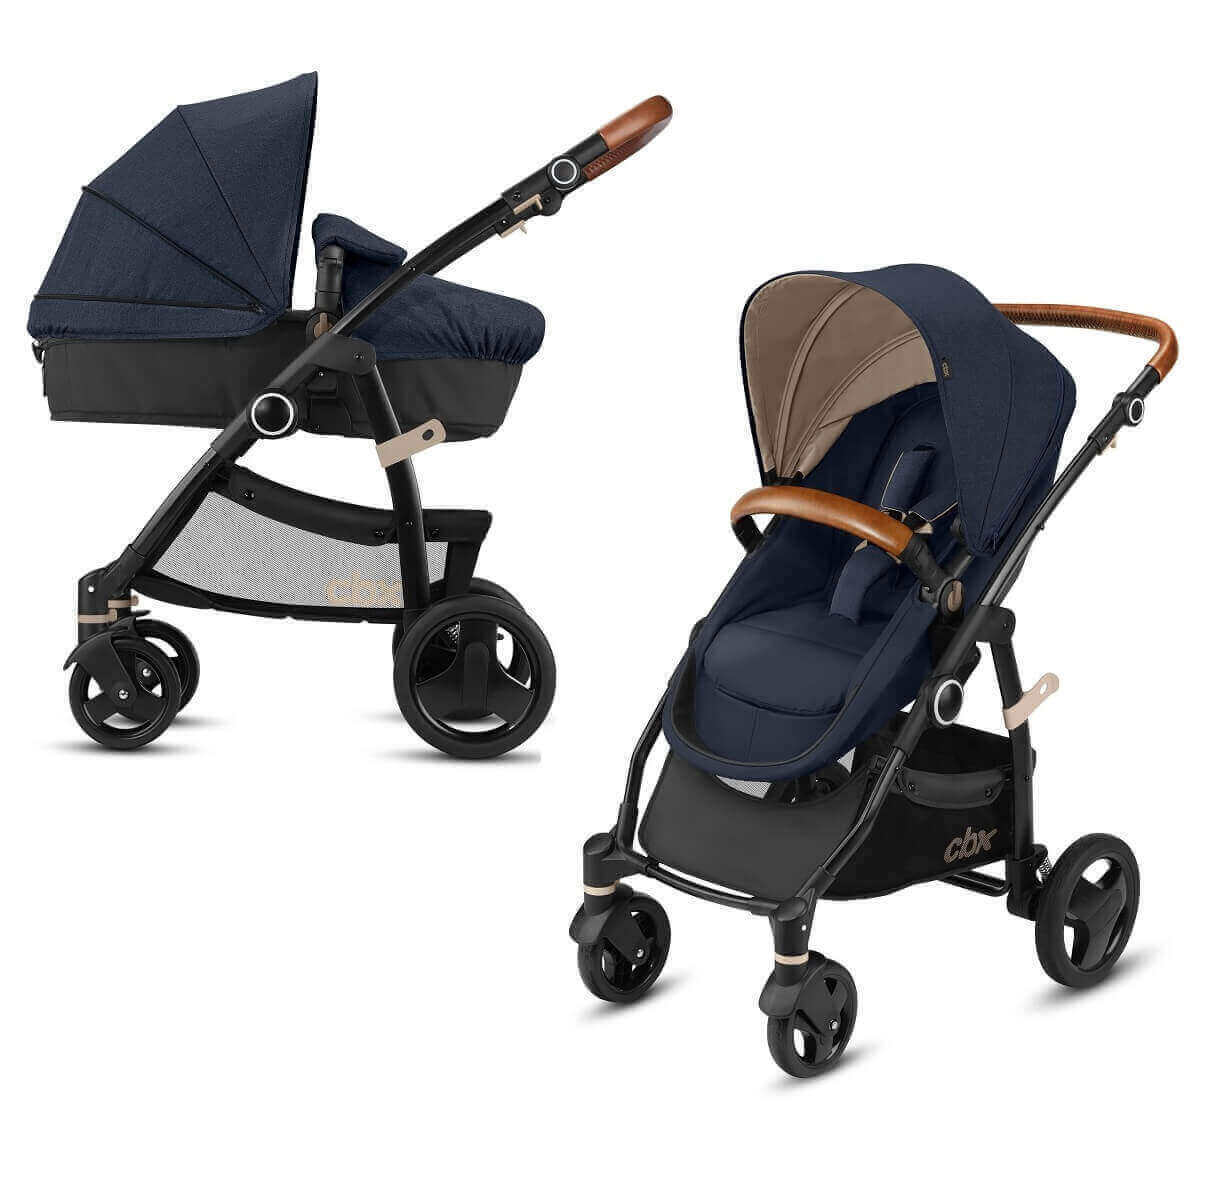 CBX by Cybex Leotie Flex трансформер Коляска-трансформер CBX by Cybex Leotie Flex Lux Jeansy Blue CBX_18_000_LEOTIE_flex_lux_Blue_Carrycot_0089_DERV_HQ_-_копия__1_.jpg